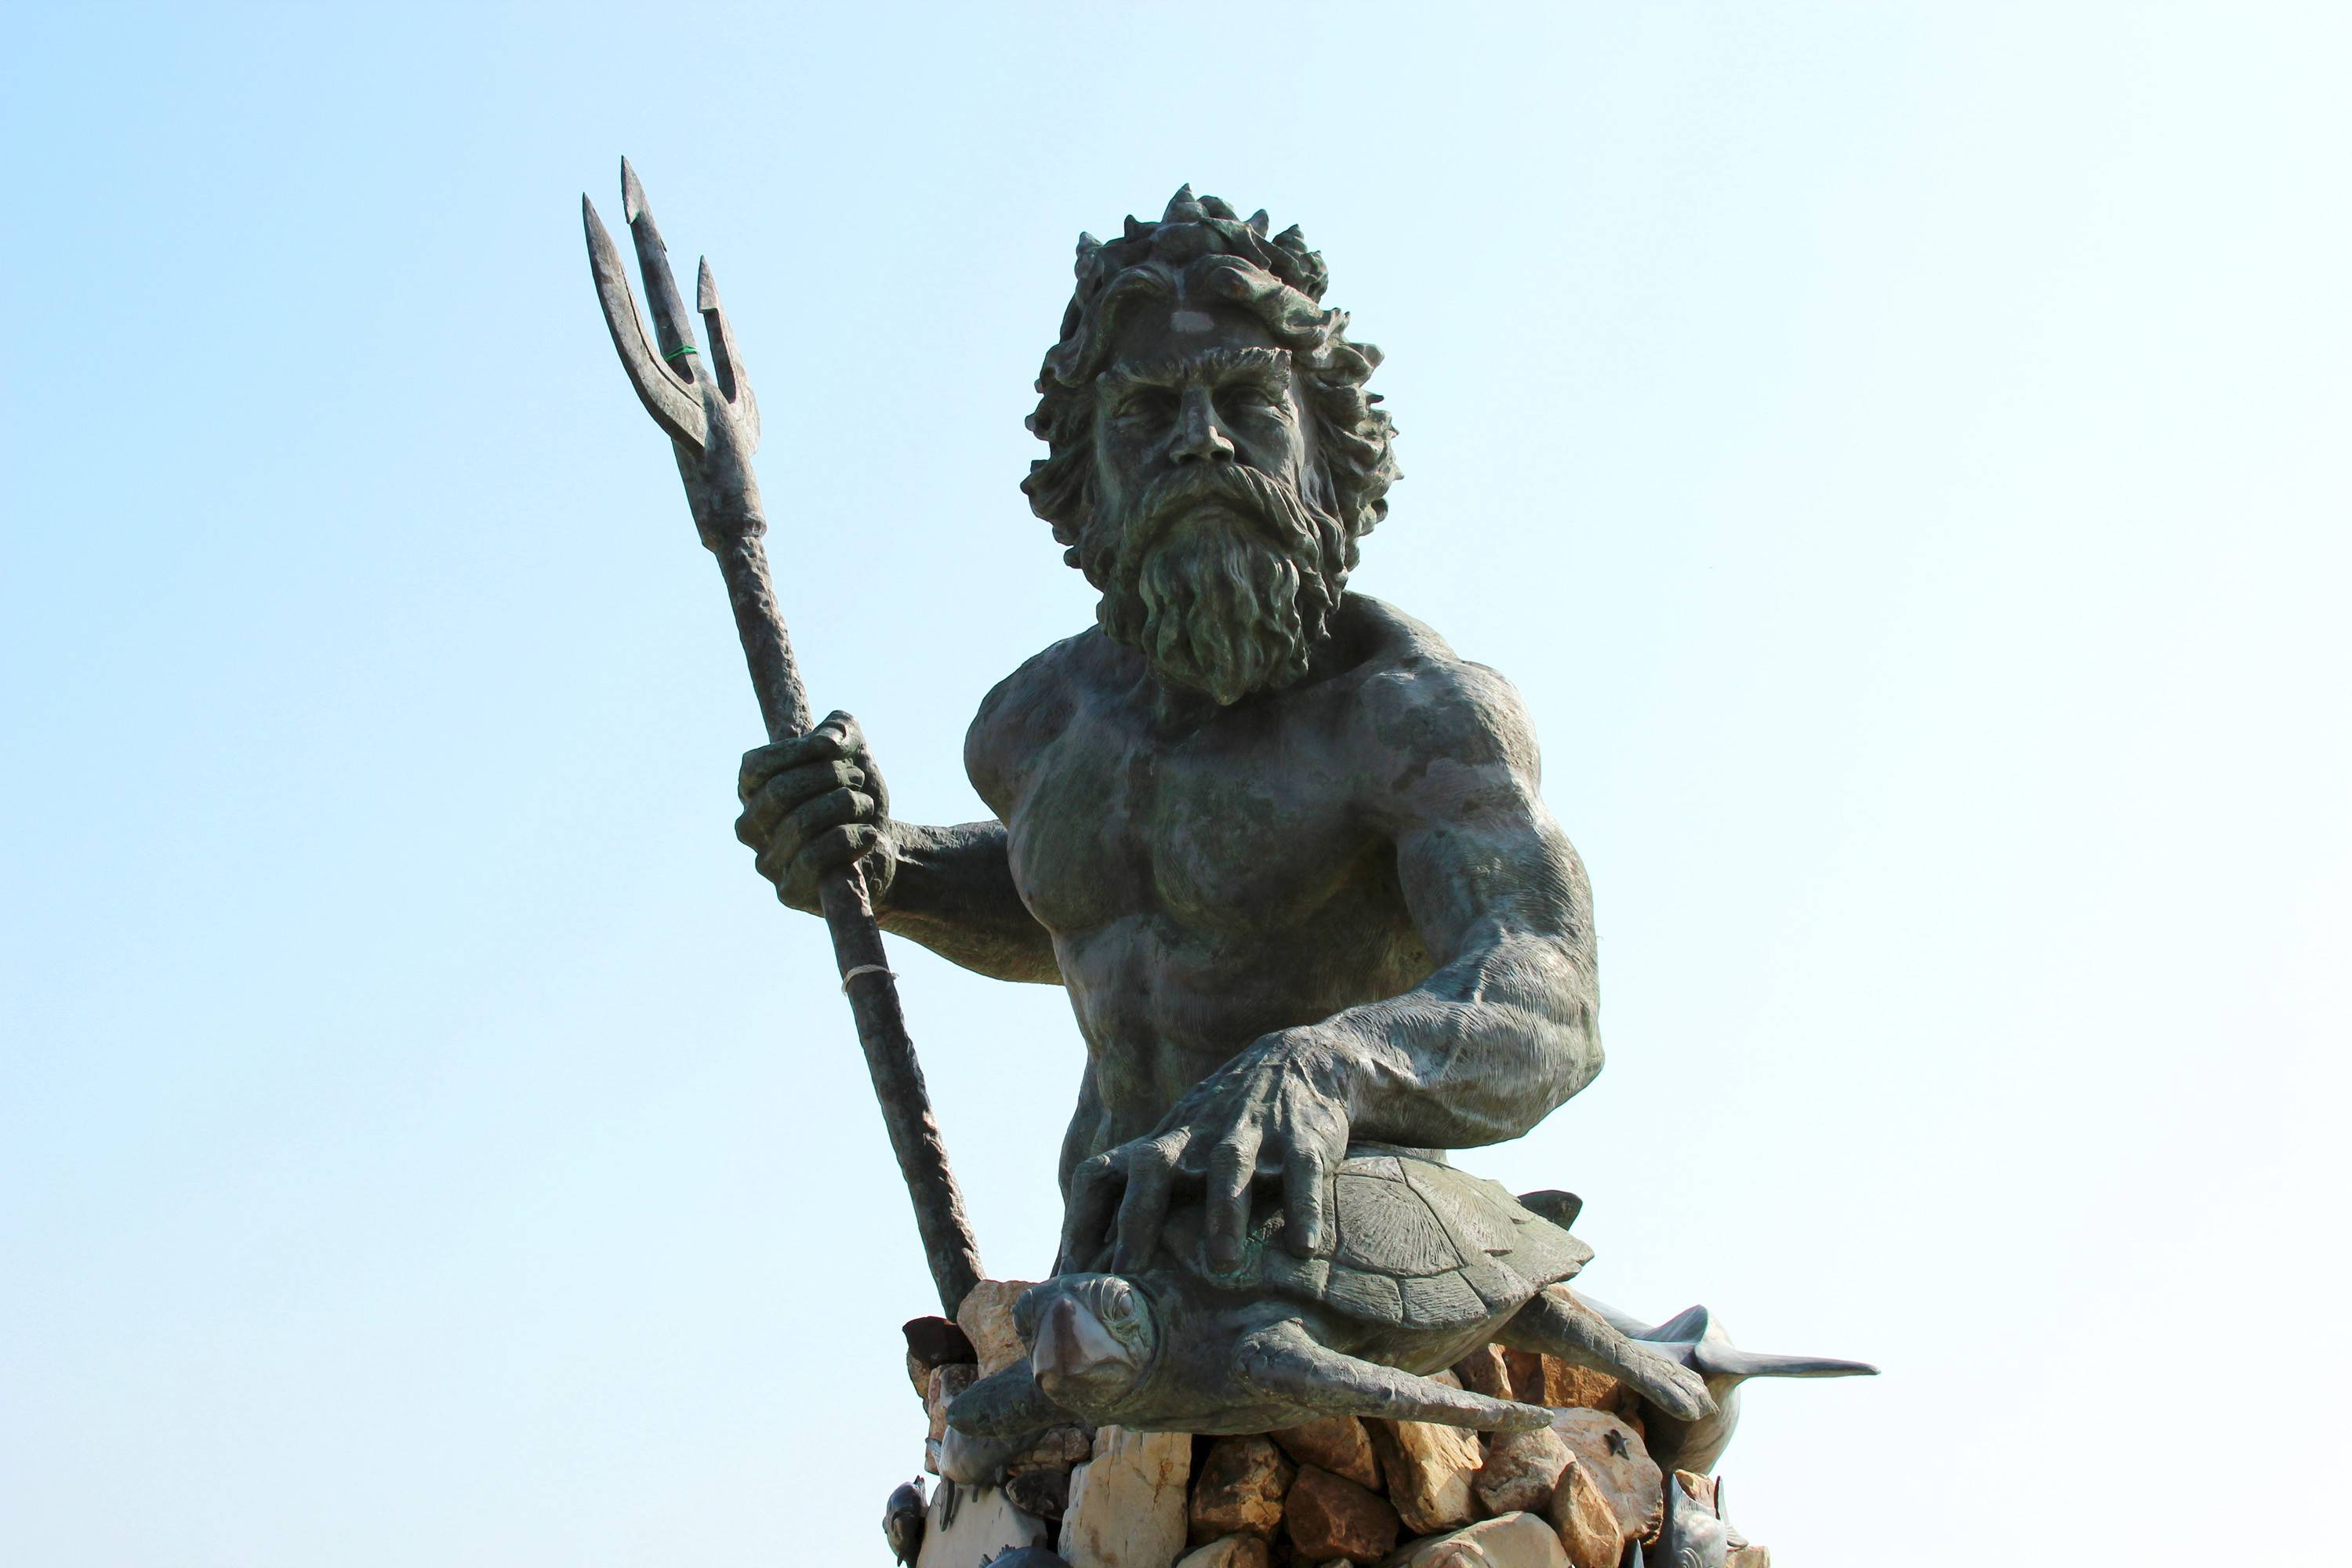 King Neptune, the mythical sea god, stands watch over the oceanfront in Virginia Beach, Va. The 34-foot statue is a popular selfie spot.